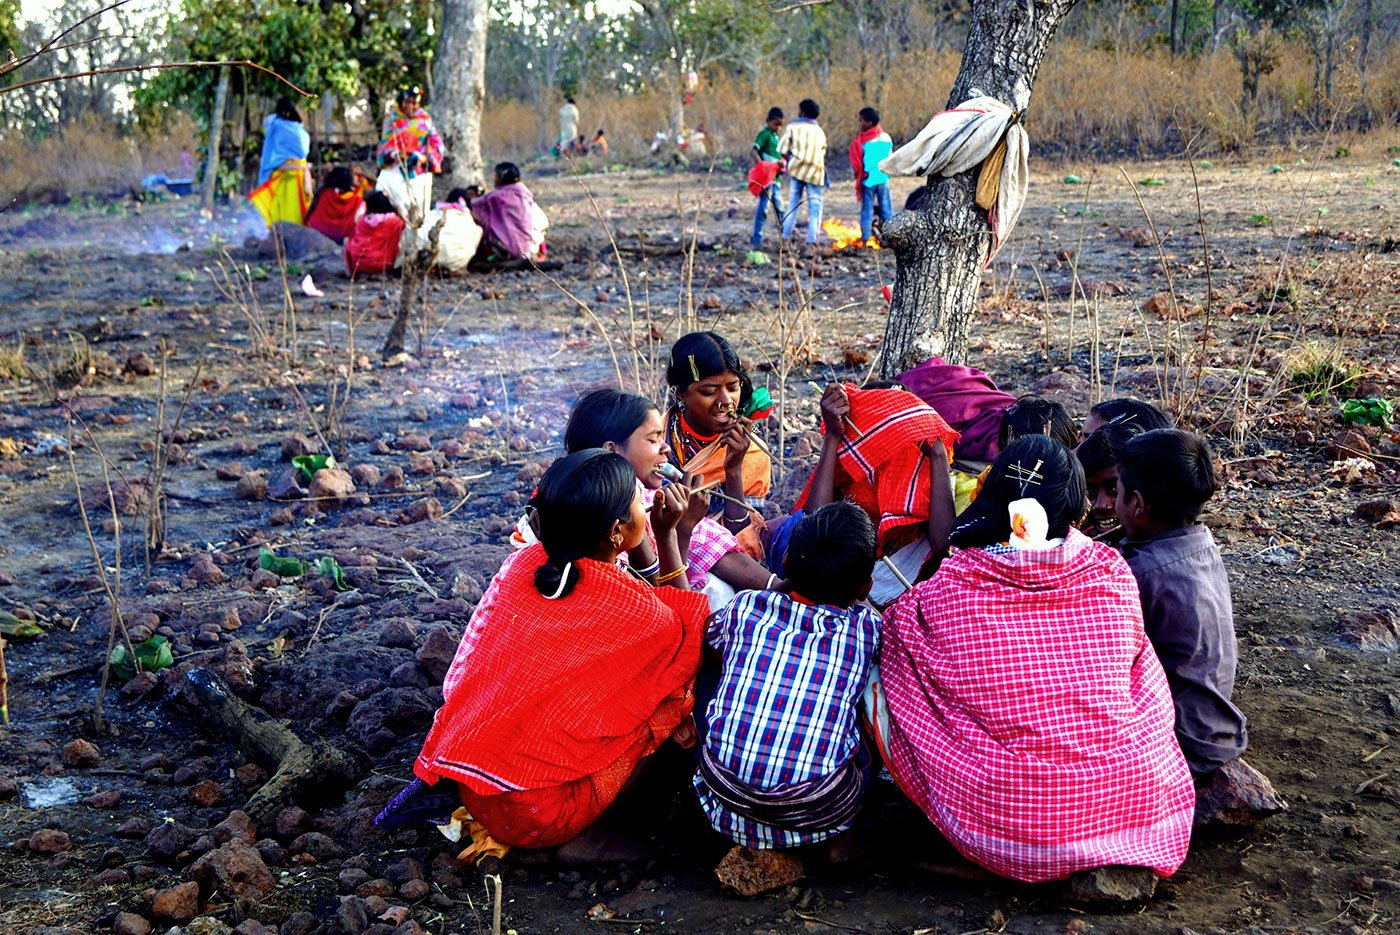 Groups of tribals sitting on the ground after the festivities